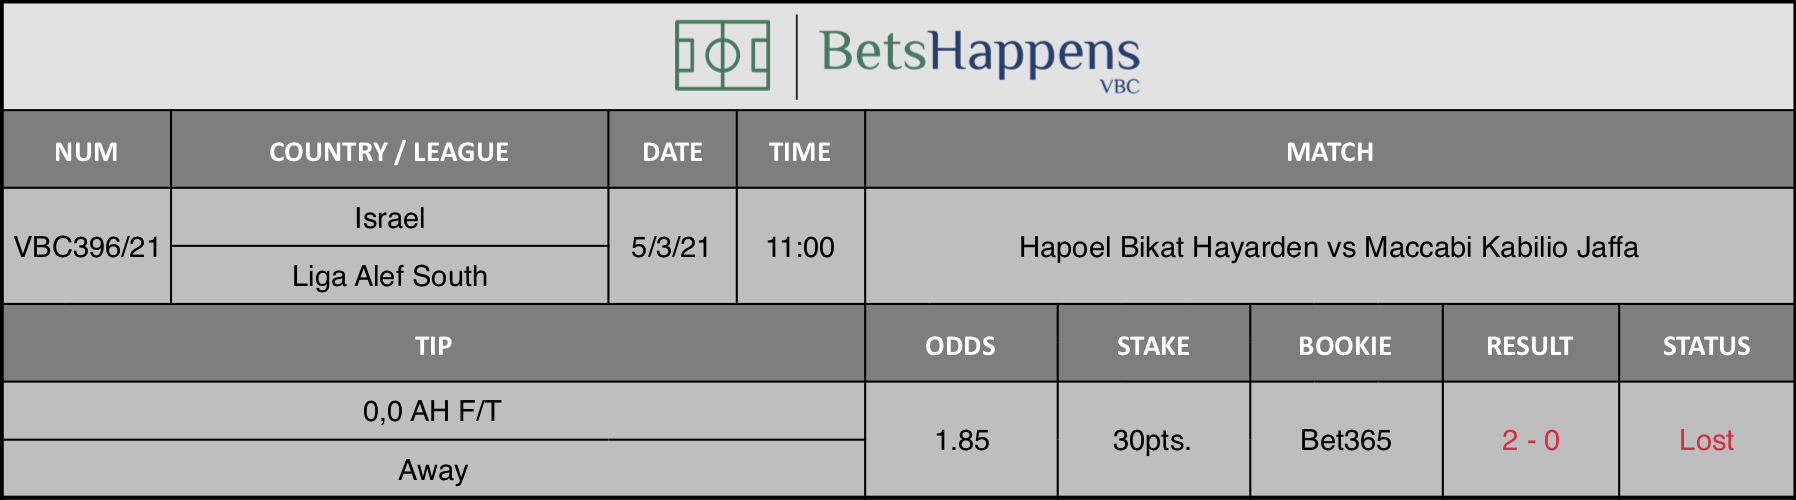 Results of our tip for the Hapoel Bikat Hayarden vs Maccabi Kabilio Jaffa match where 0,0 AH F/T  Away is recommended.